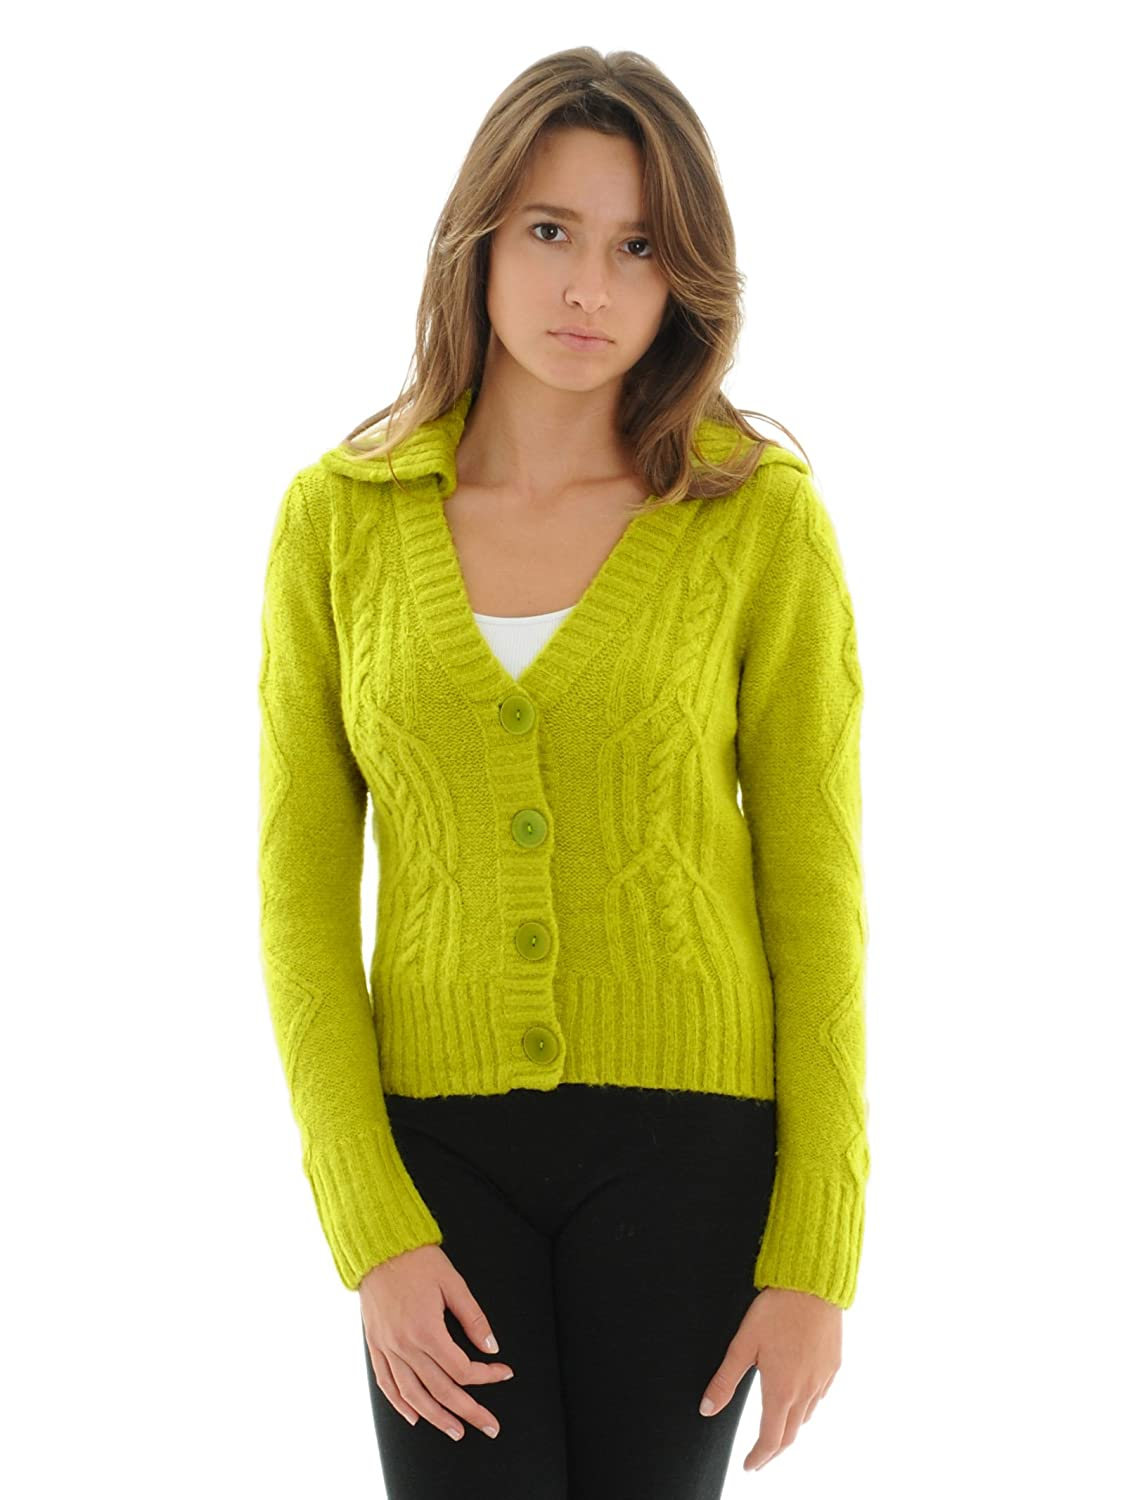 Vice Versa Women's Chartreuse Cable Knit Collar Wool Blend Cardigan Sweater